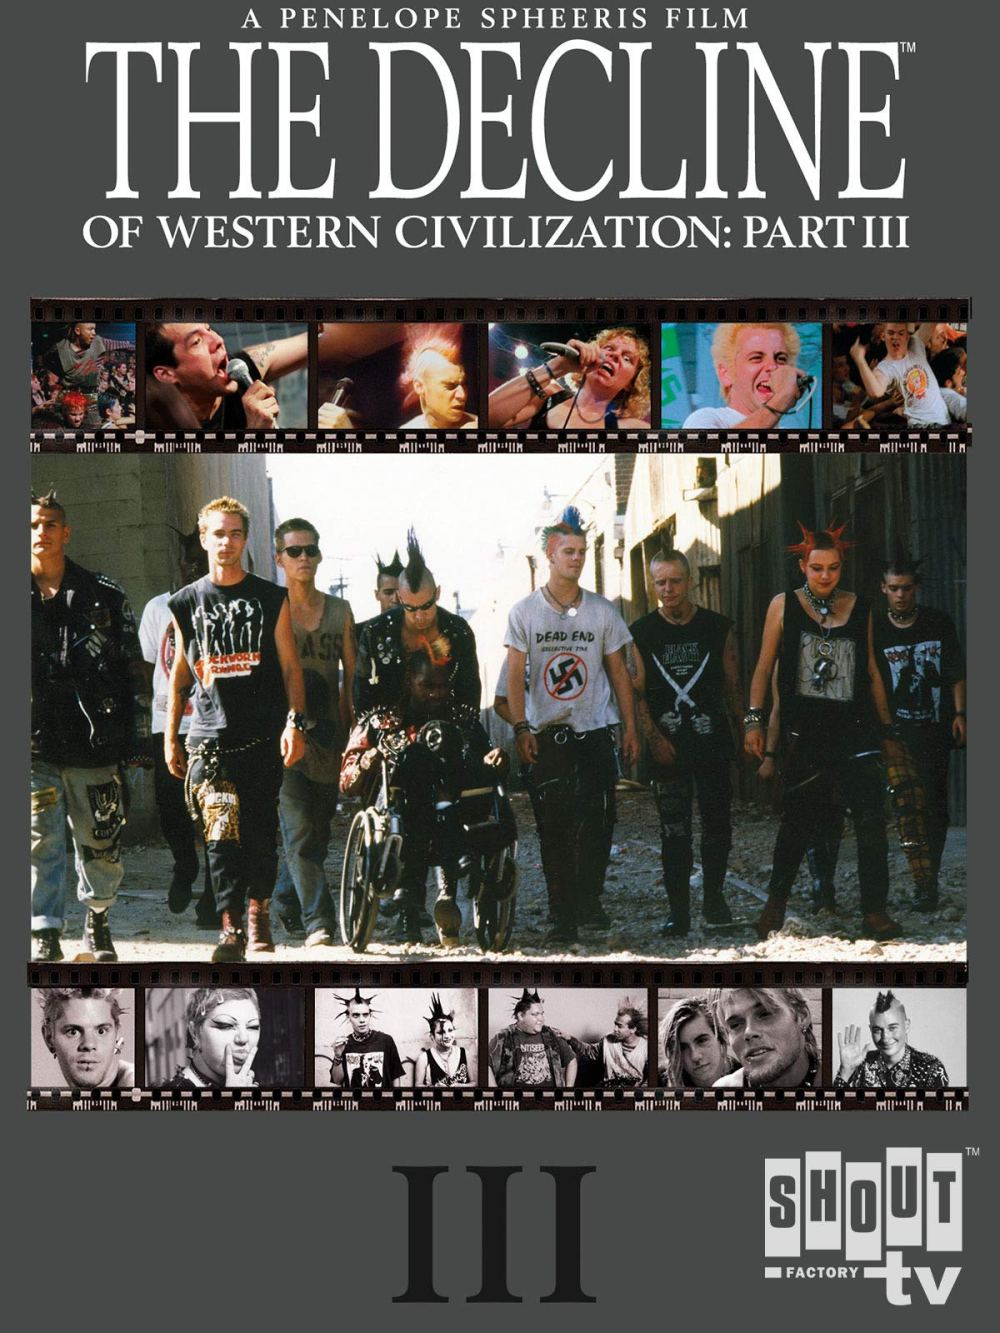 Cartel de Documental de The Decline of Western Civilization III (Penelope Spheeris, 1998)